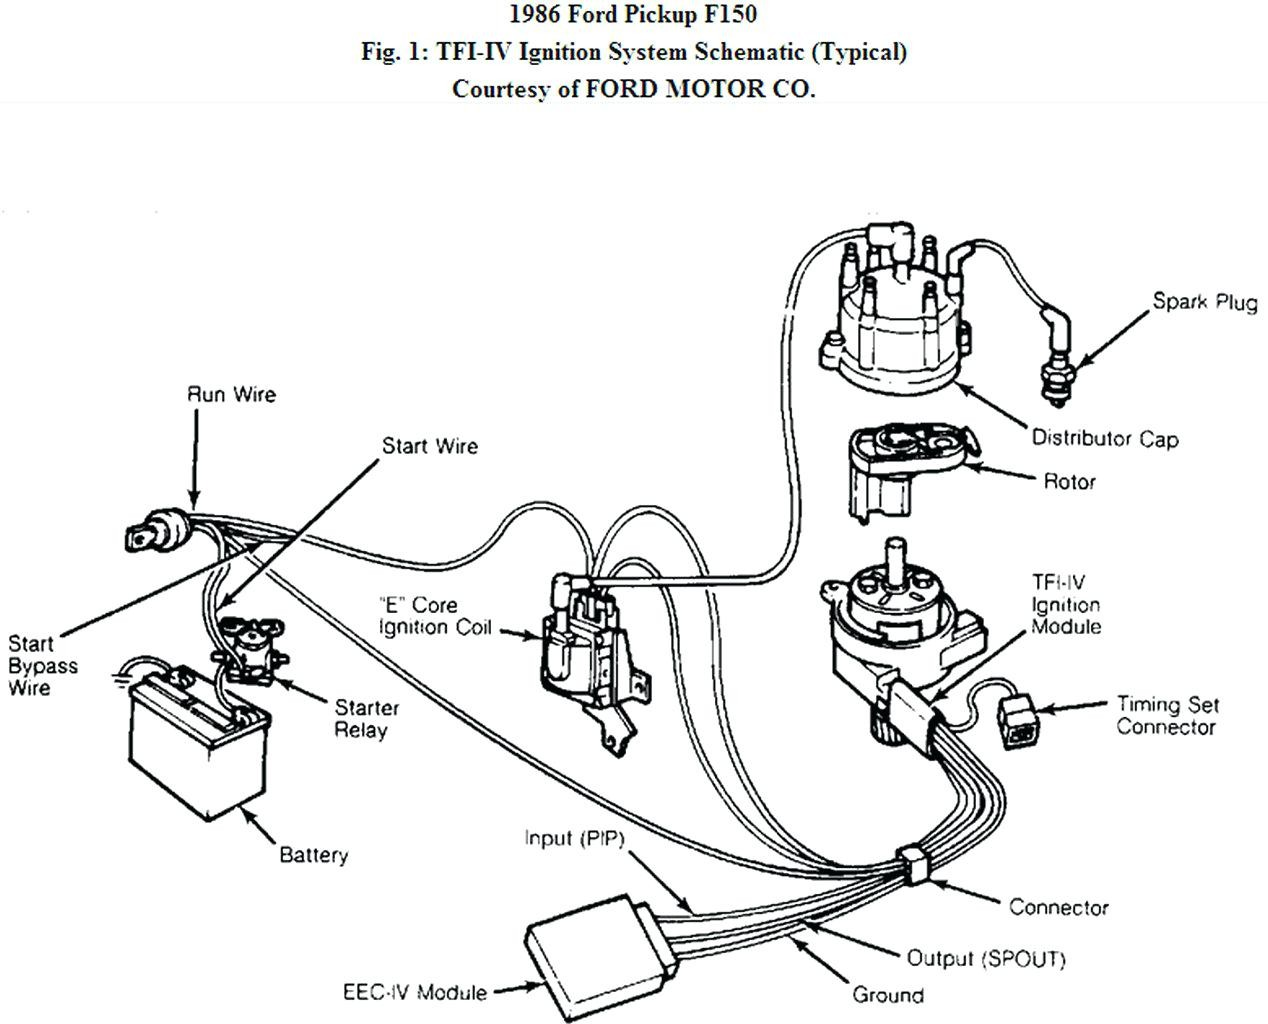 1986 ford f 150 alternator wiring wire center \u2022 1996 ford mustang alternator diagram 1986 ford f150 wiring diagram radio wiring diagram u2022 rh diagrambay today 1986 ford f150 alternator wiring harness ford alternator wiring diagram